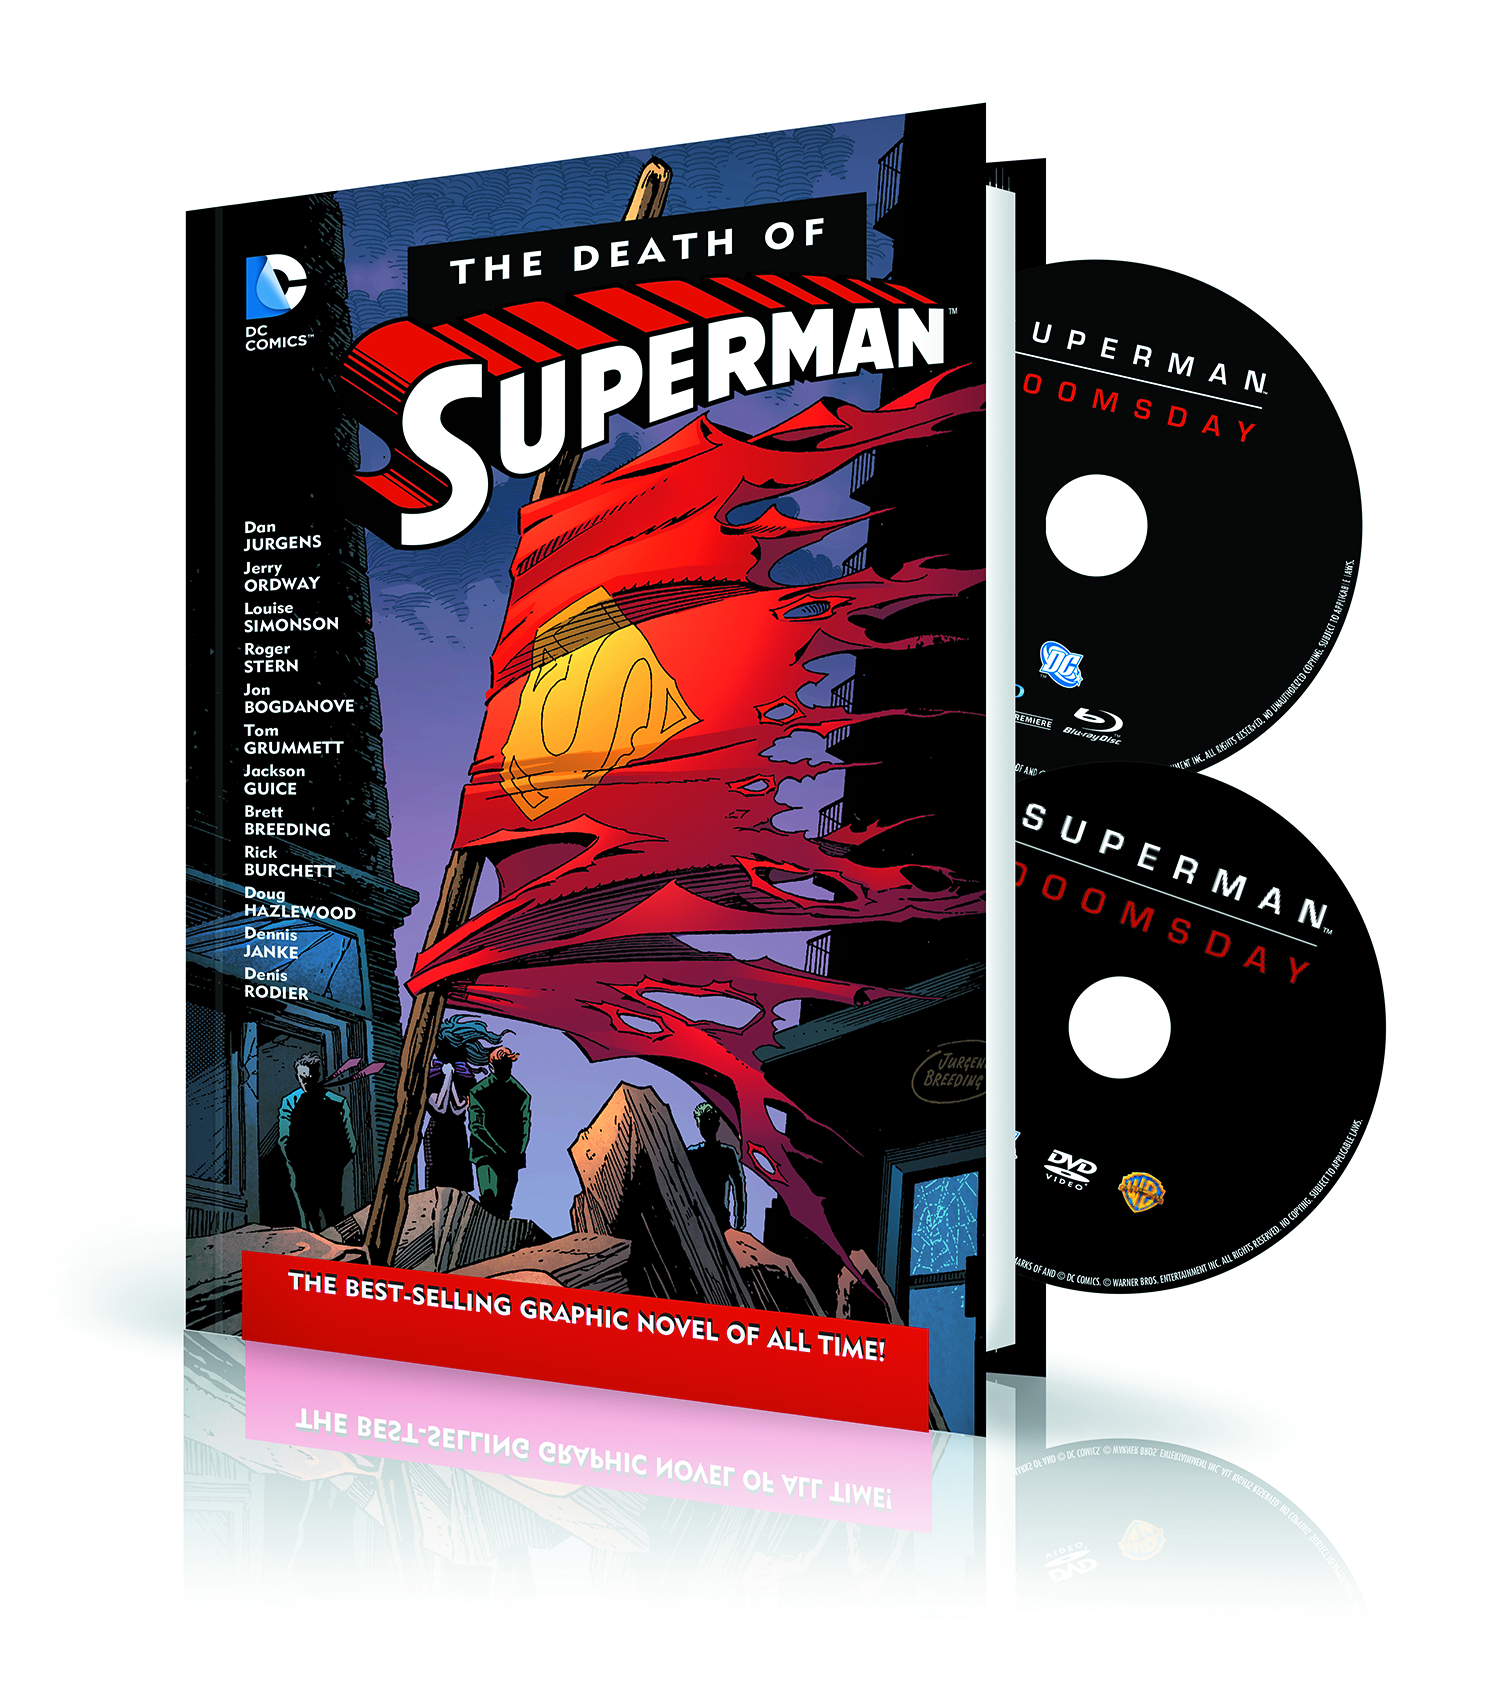 DEATH OF SUPERMAN HC DVD & BLU RAY SET